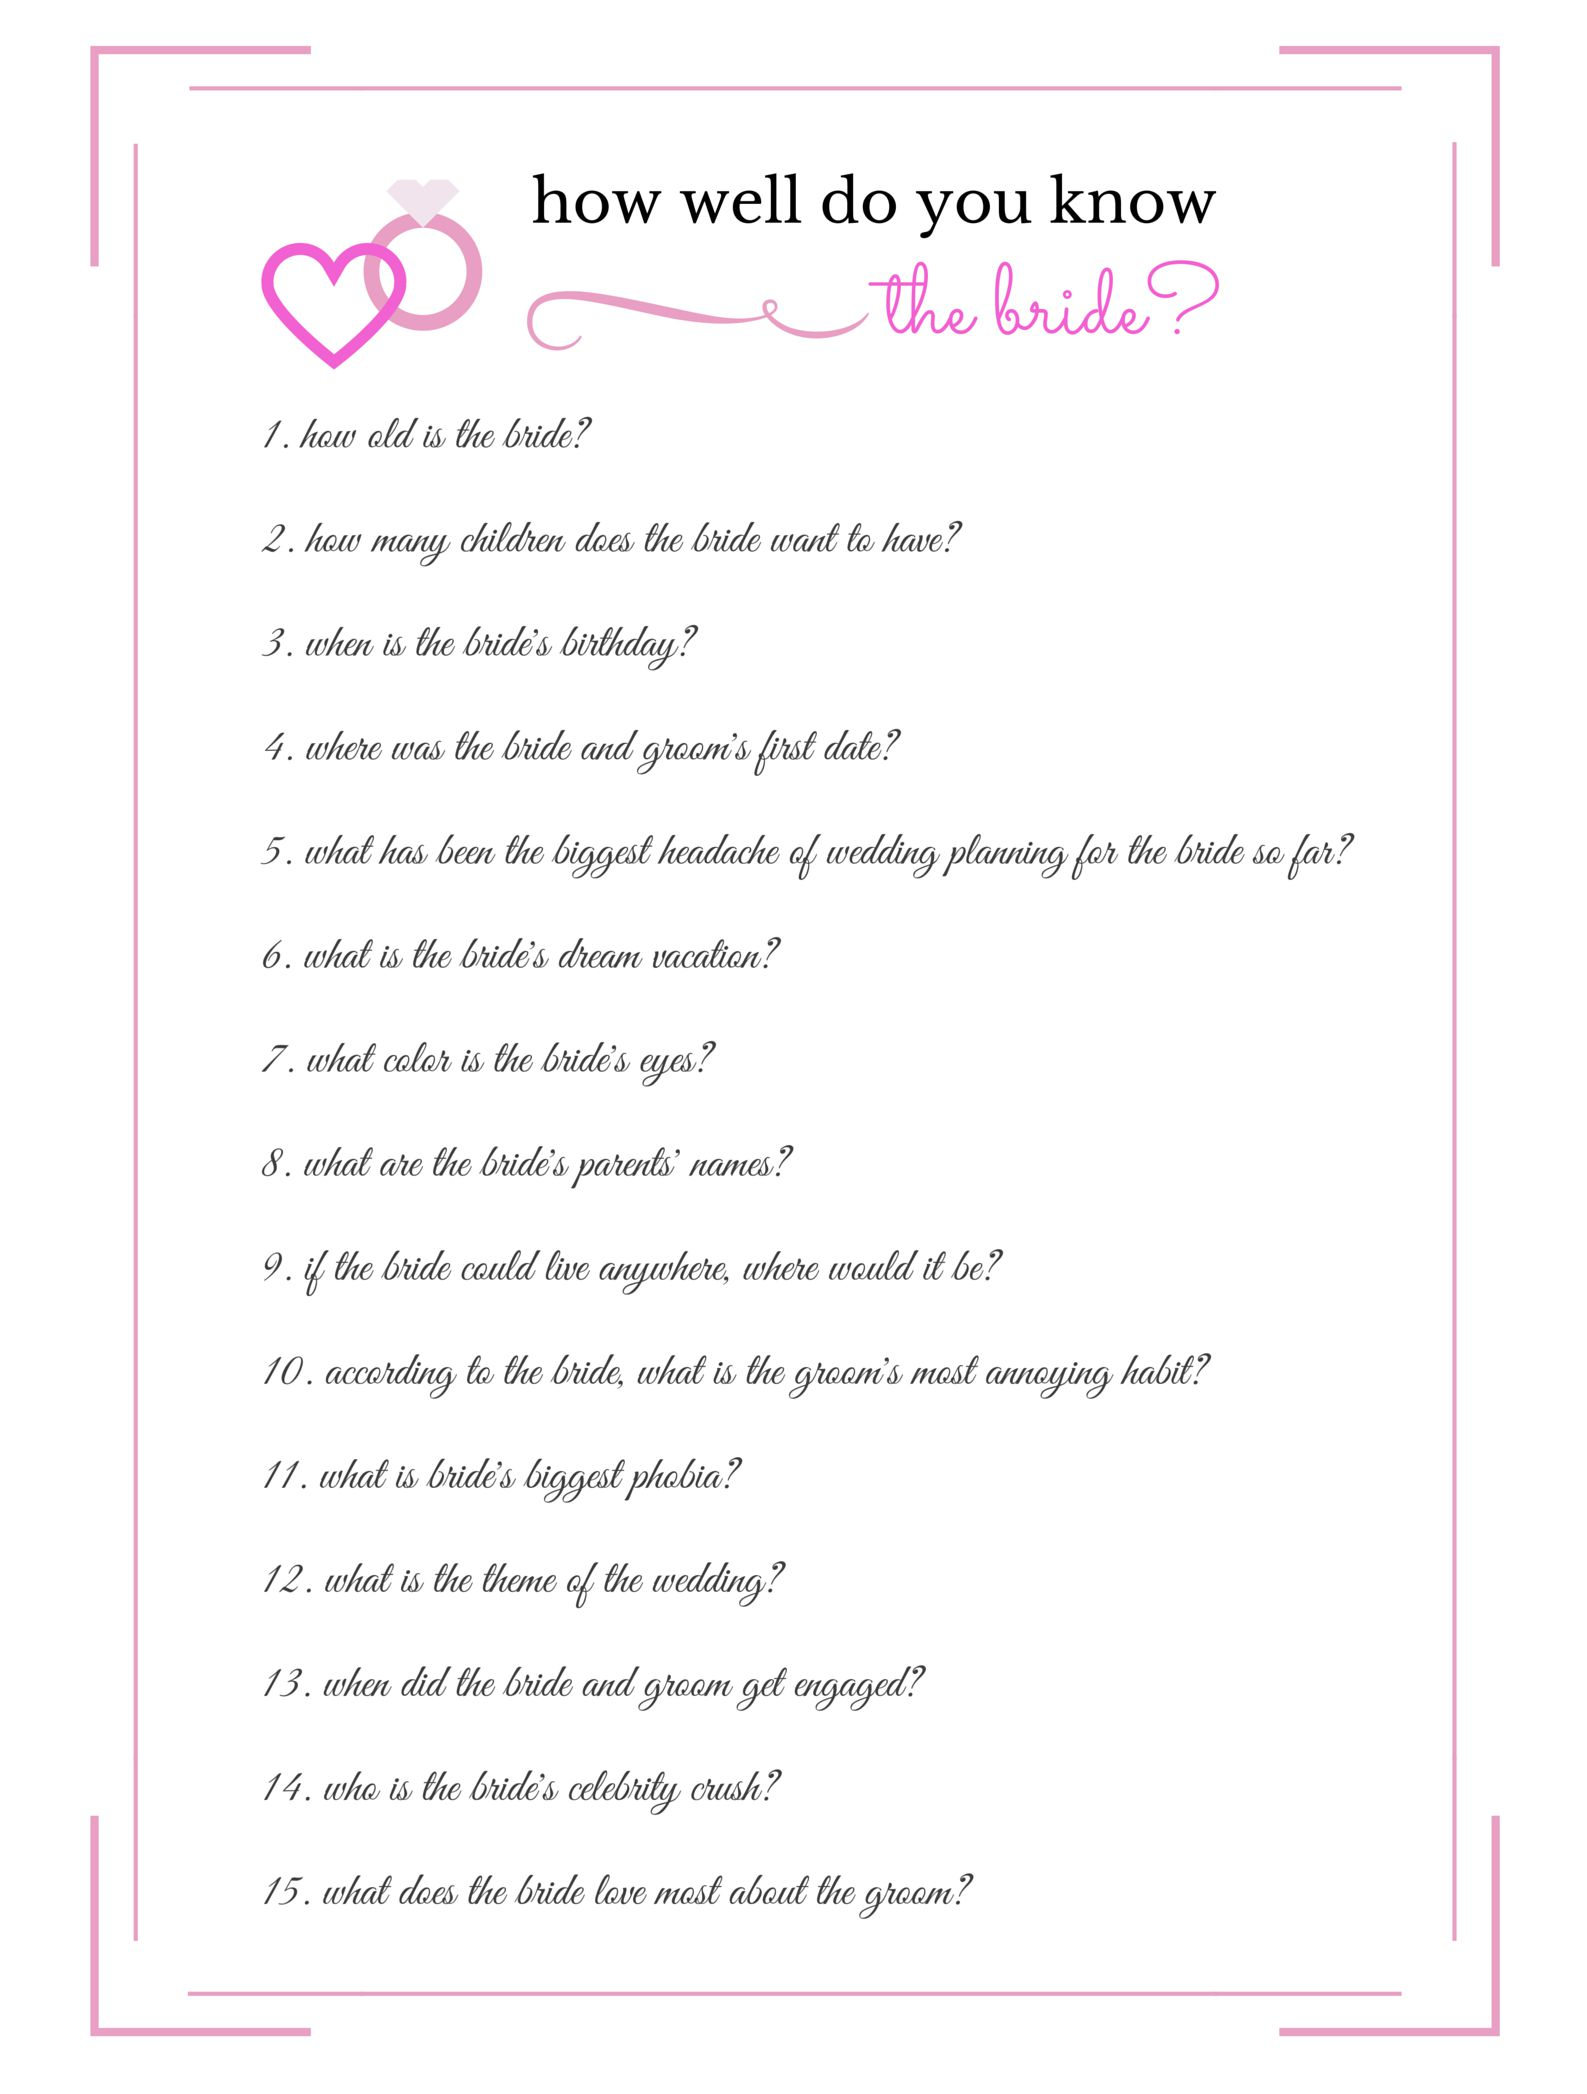 Most Likely To Questions >> From Wild To Sober 10 Bachelorette Party Games To Have